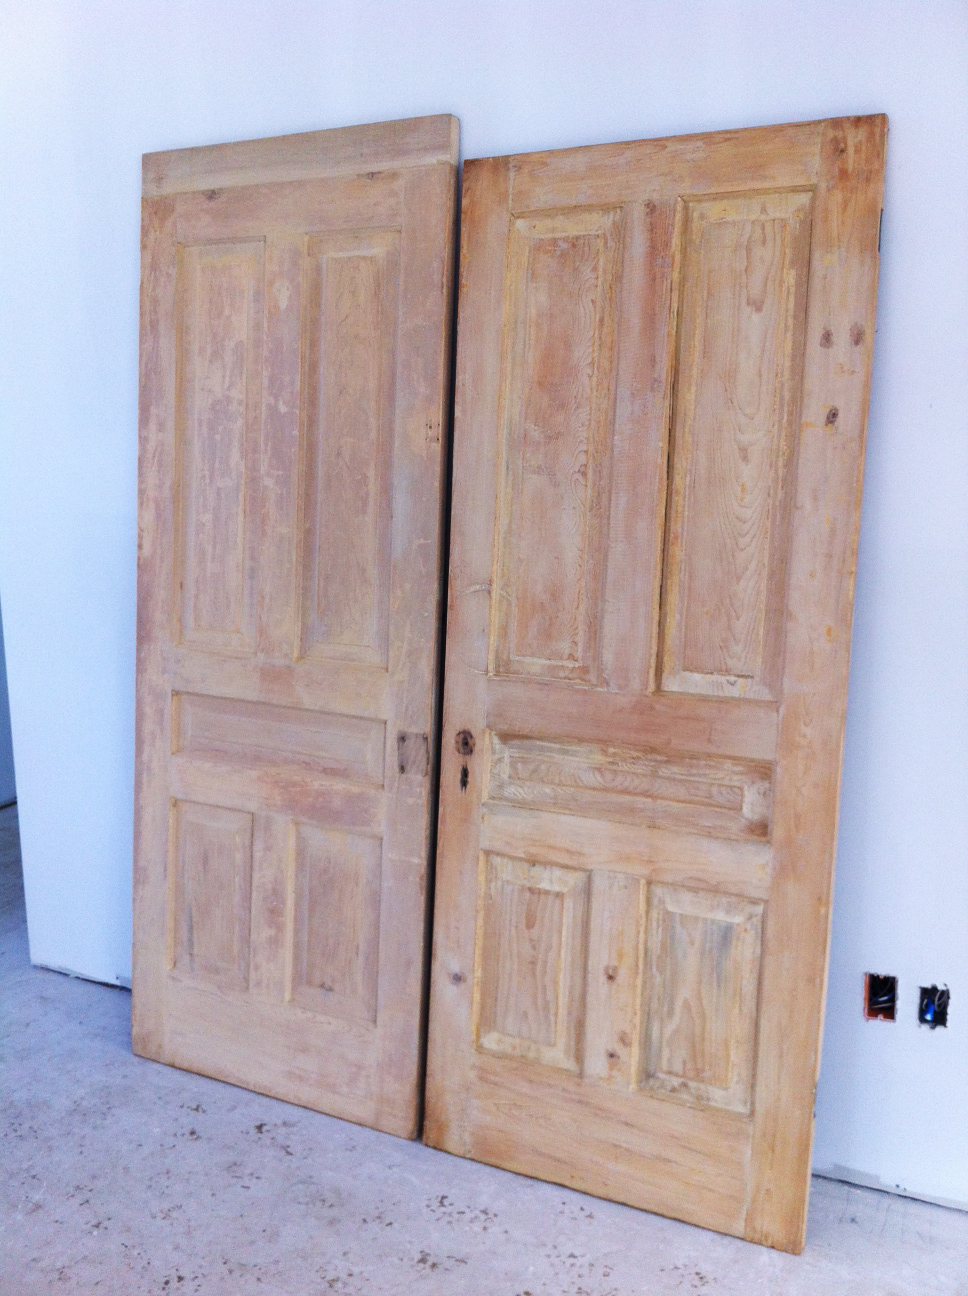 Antique Interior Doors & Newel Posts - Building Walnut Farm: Antique Interior Doors & Newel Posts